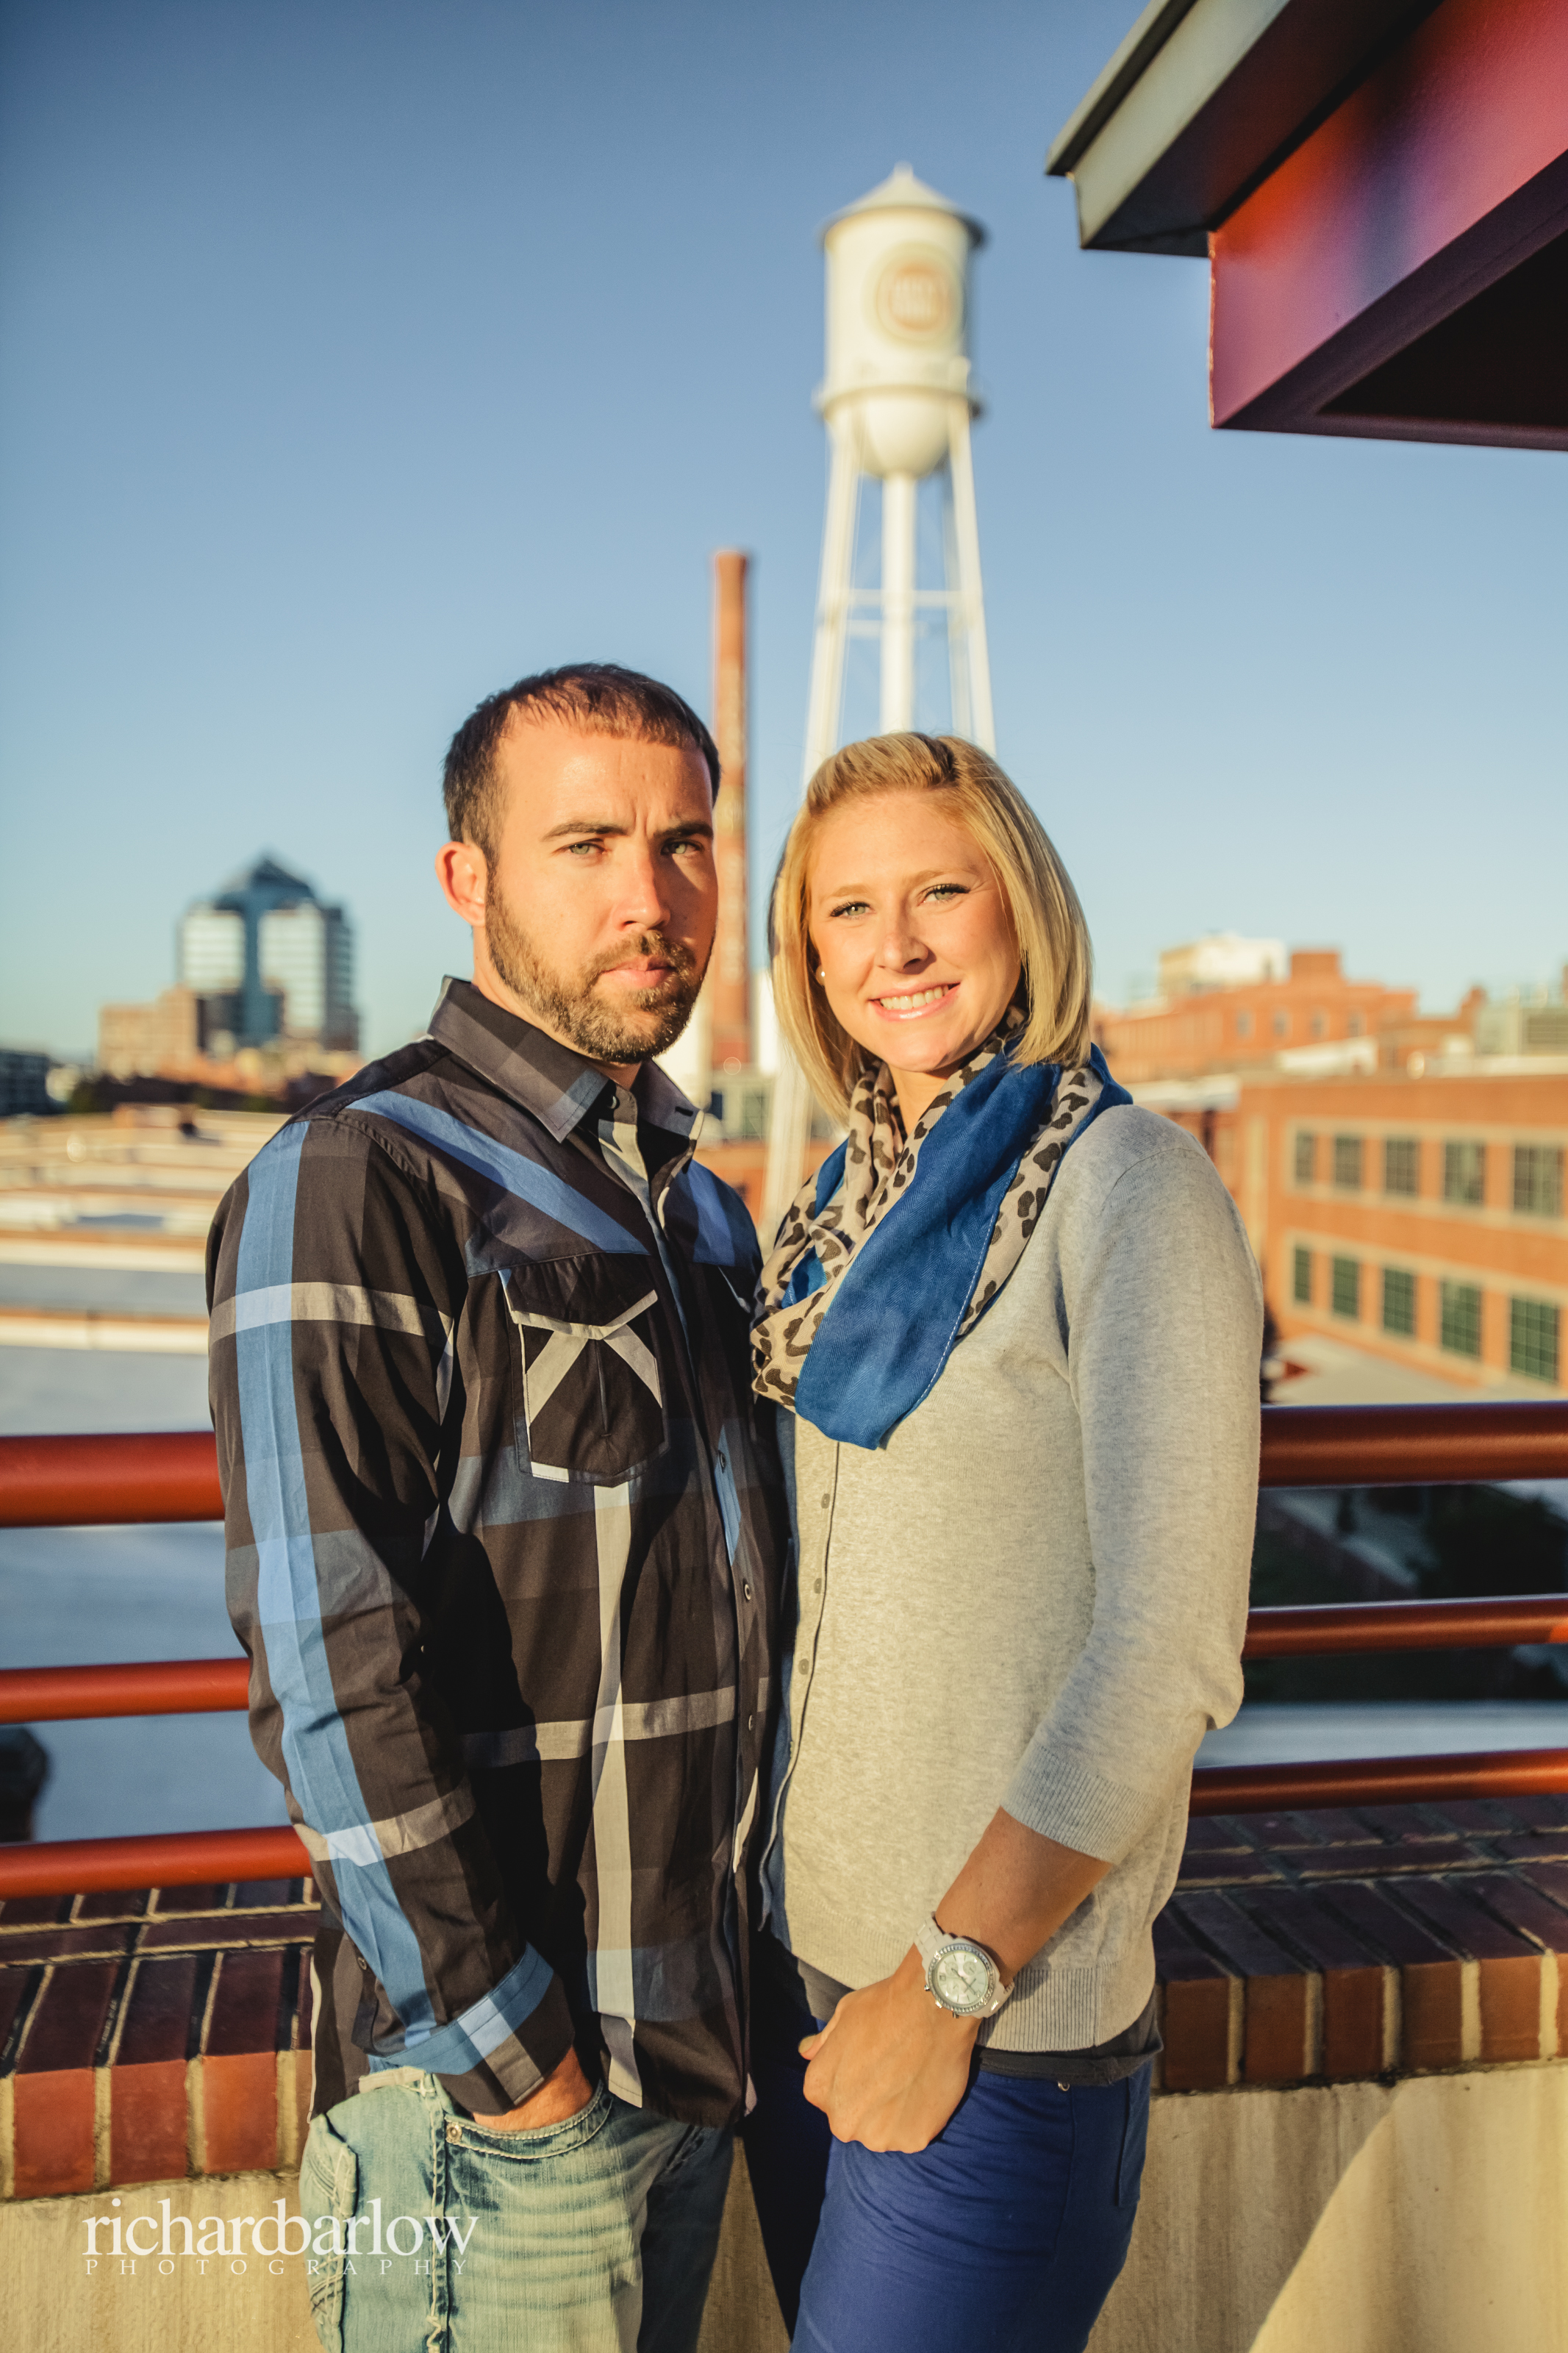 richard barlow photography - Mike and Renee Engagement Session NC-10.jpg